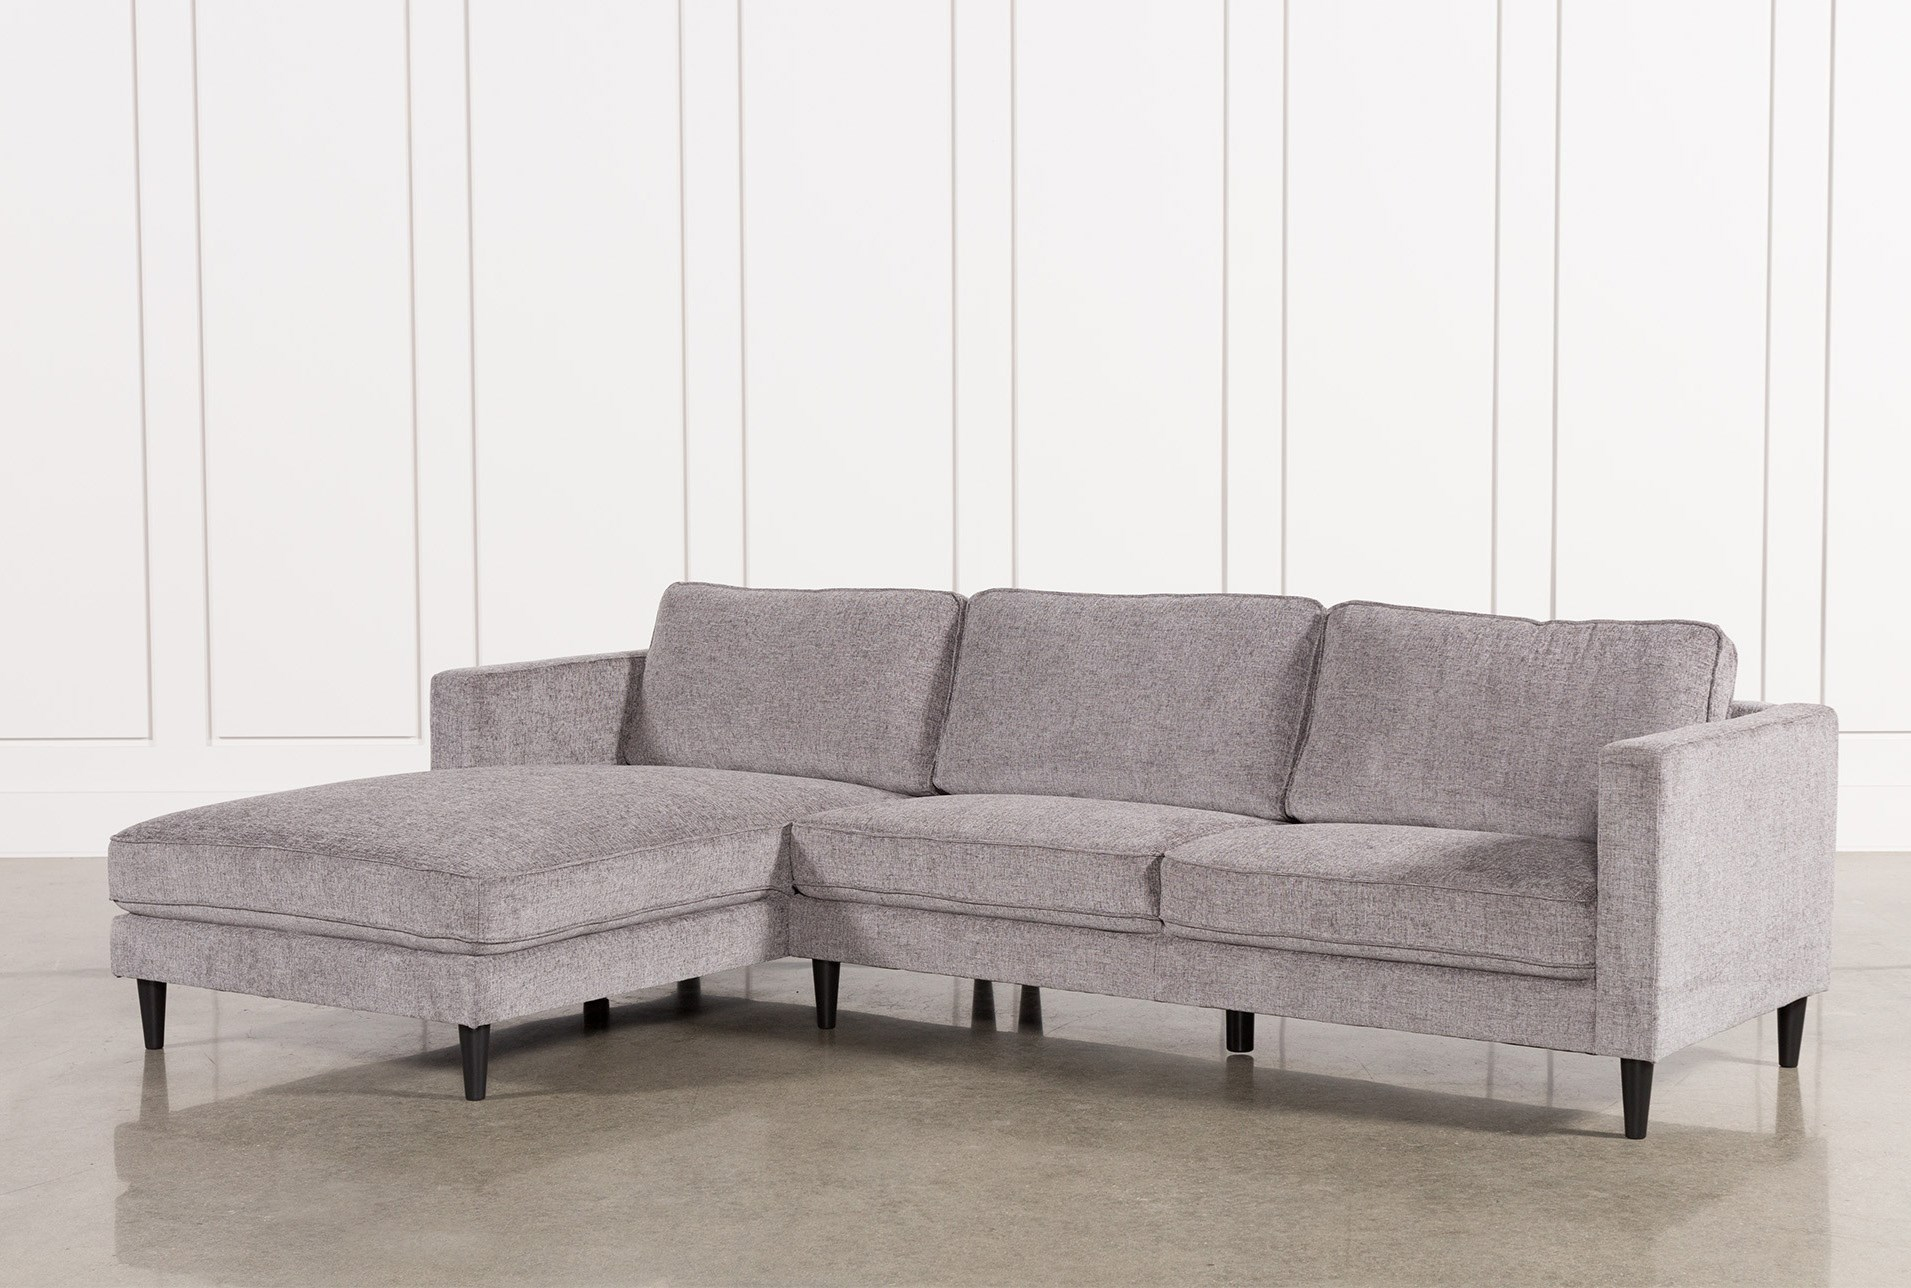 sofa sede sofas on room and paint how tips revista to couch chaise sectional design gray with